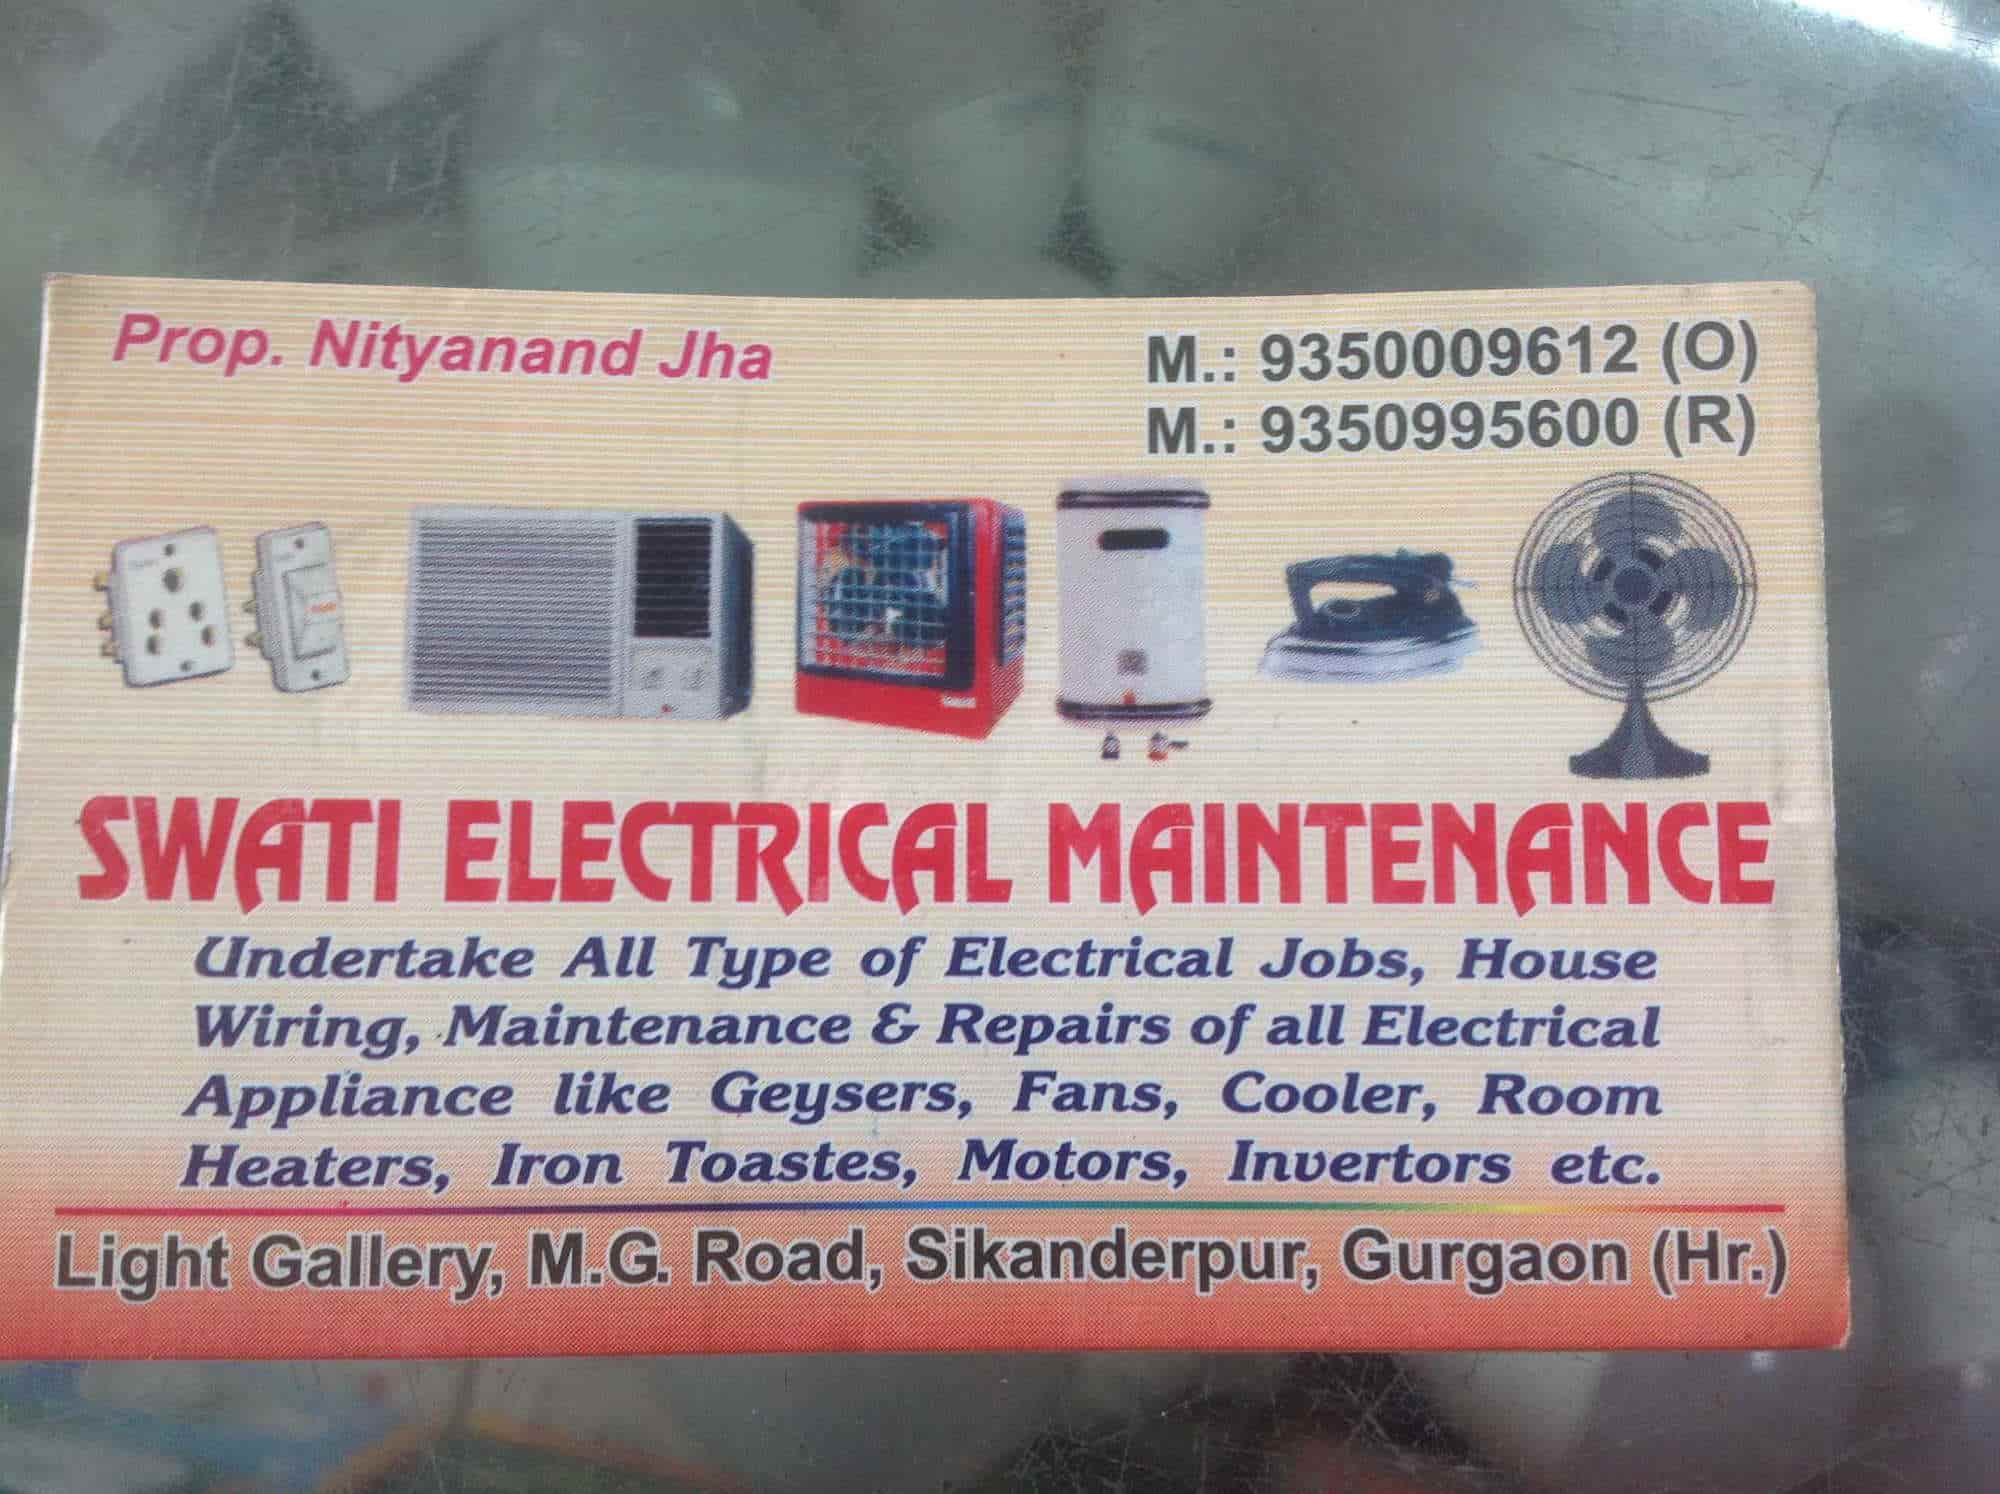 Swati Electrical Maintenance Photos, , Delhi- Pictures